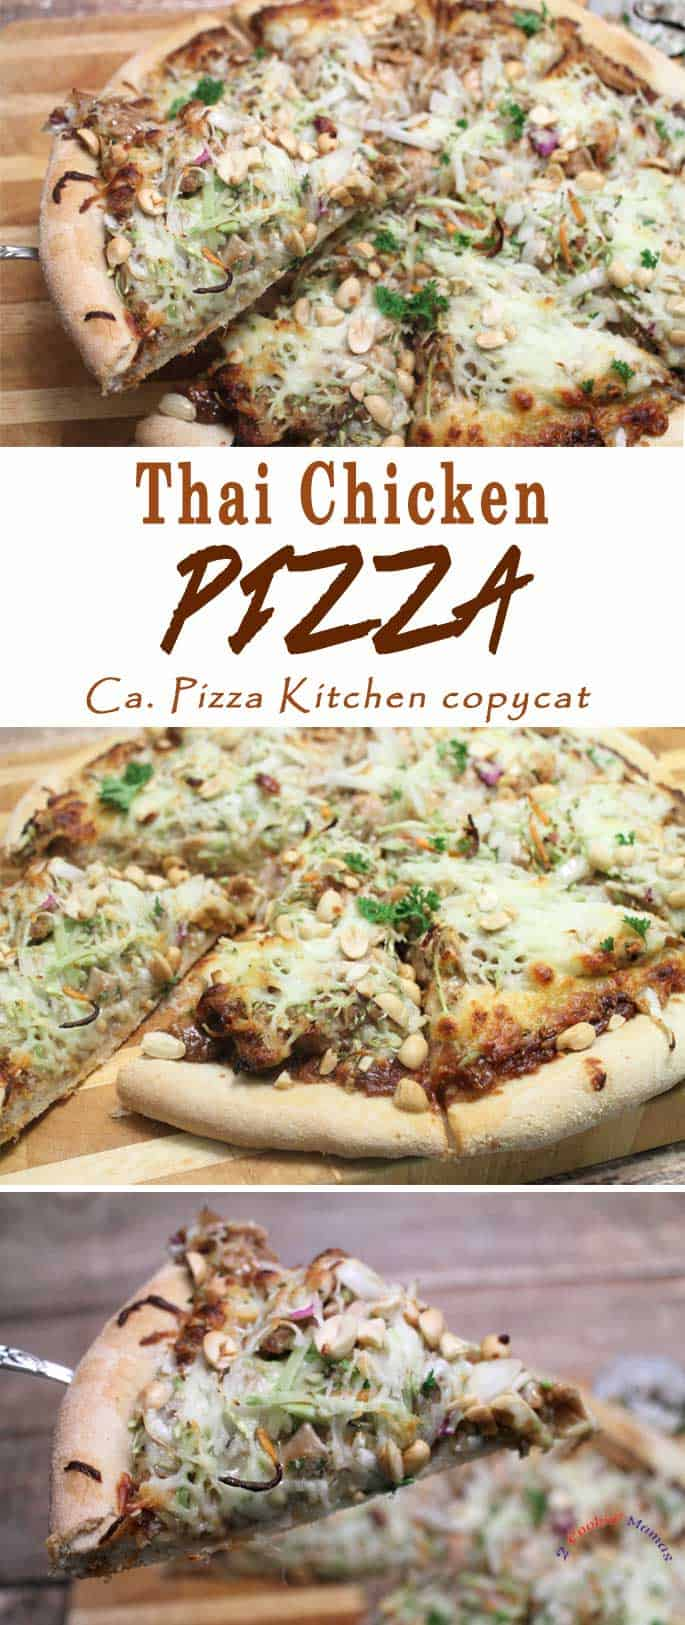 Thai Chicken Pizza | 2 Cookin Mamas If you love Thai flavors & can't get enough of pizza then this Thai Chicken Pizza is for you! Think chicken tossed in peanut sauce, scattered with bean sprouts, carrots, onion and peanuts then topped with mozzarella.